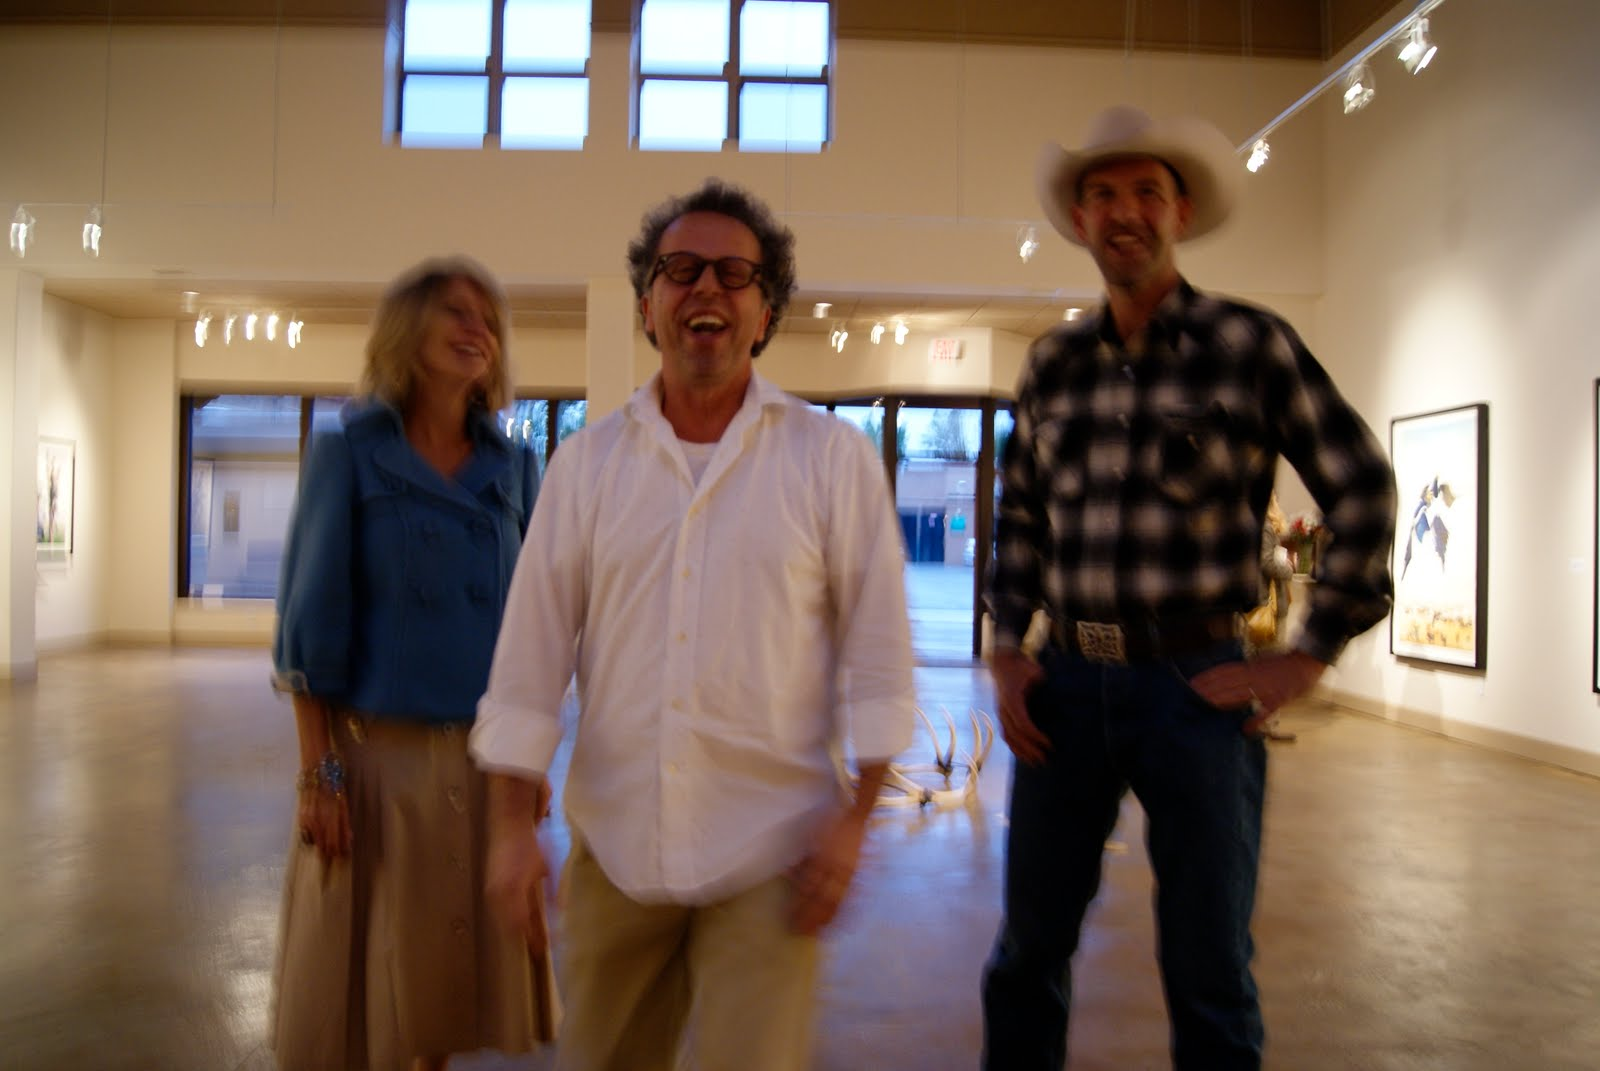 marji gallery contemporary projects  marji hoyle saher saman taylor mott just before the opening on friday night posted by marji gallery santa fe